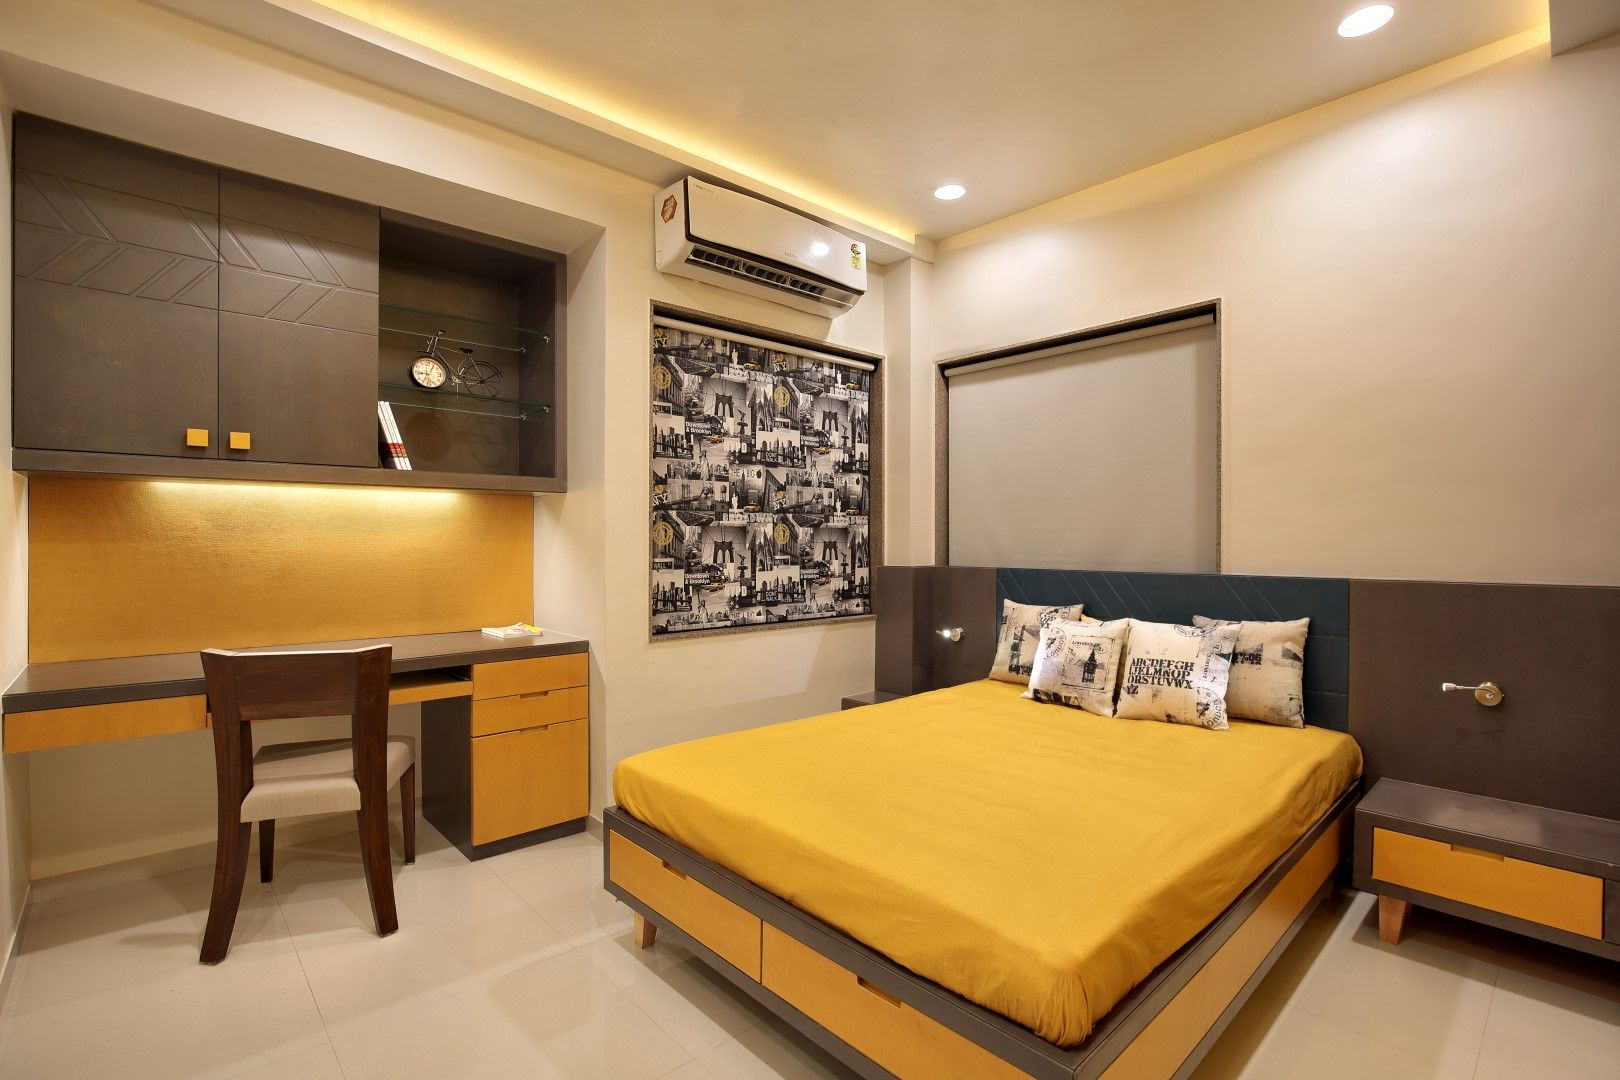 Fusion design of apartment in vadodara is aesthetically appealing studio7 the overall design is contemporary but used an element like floral motif